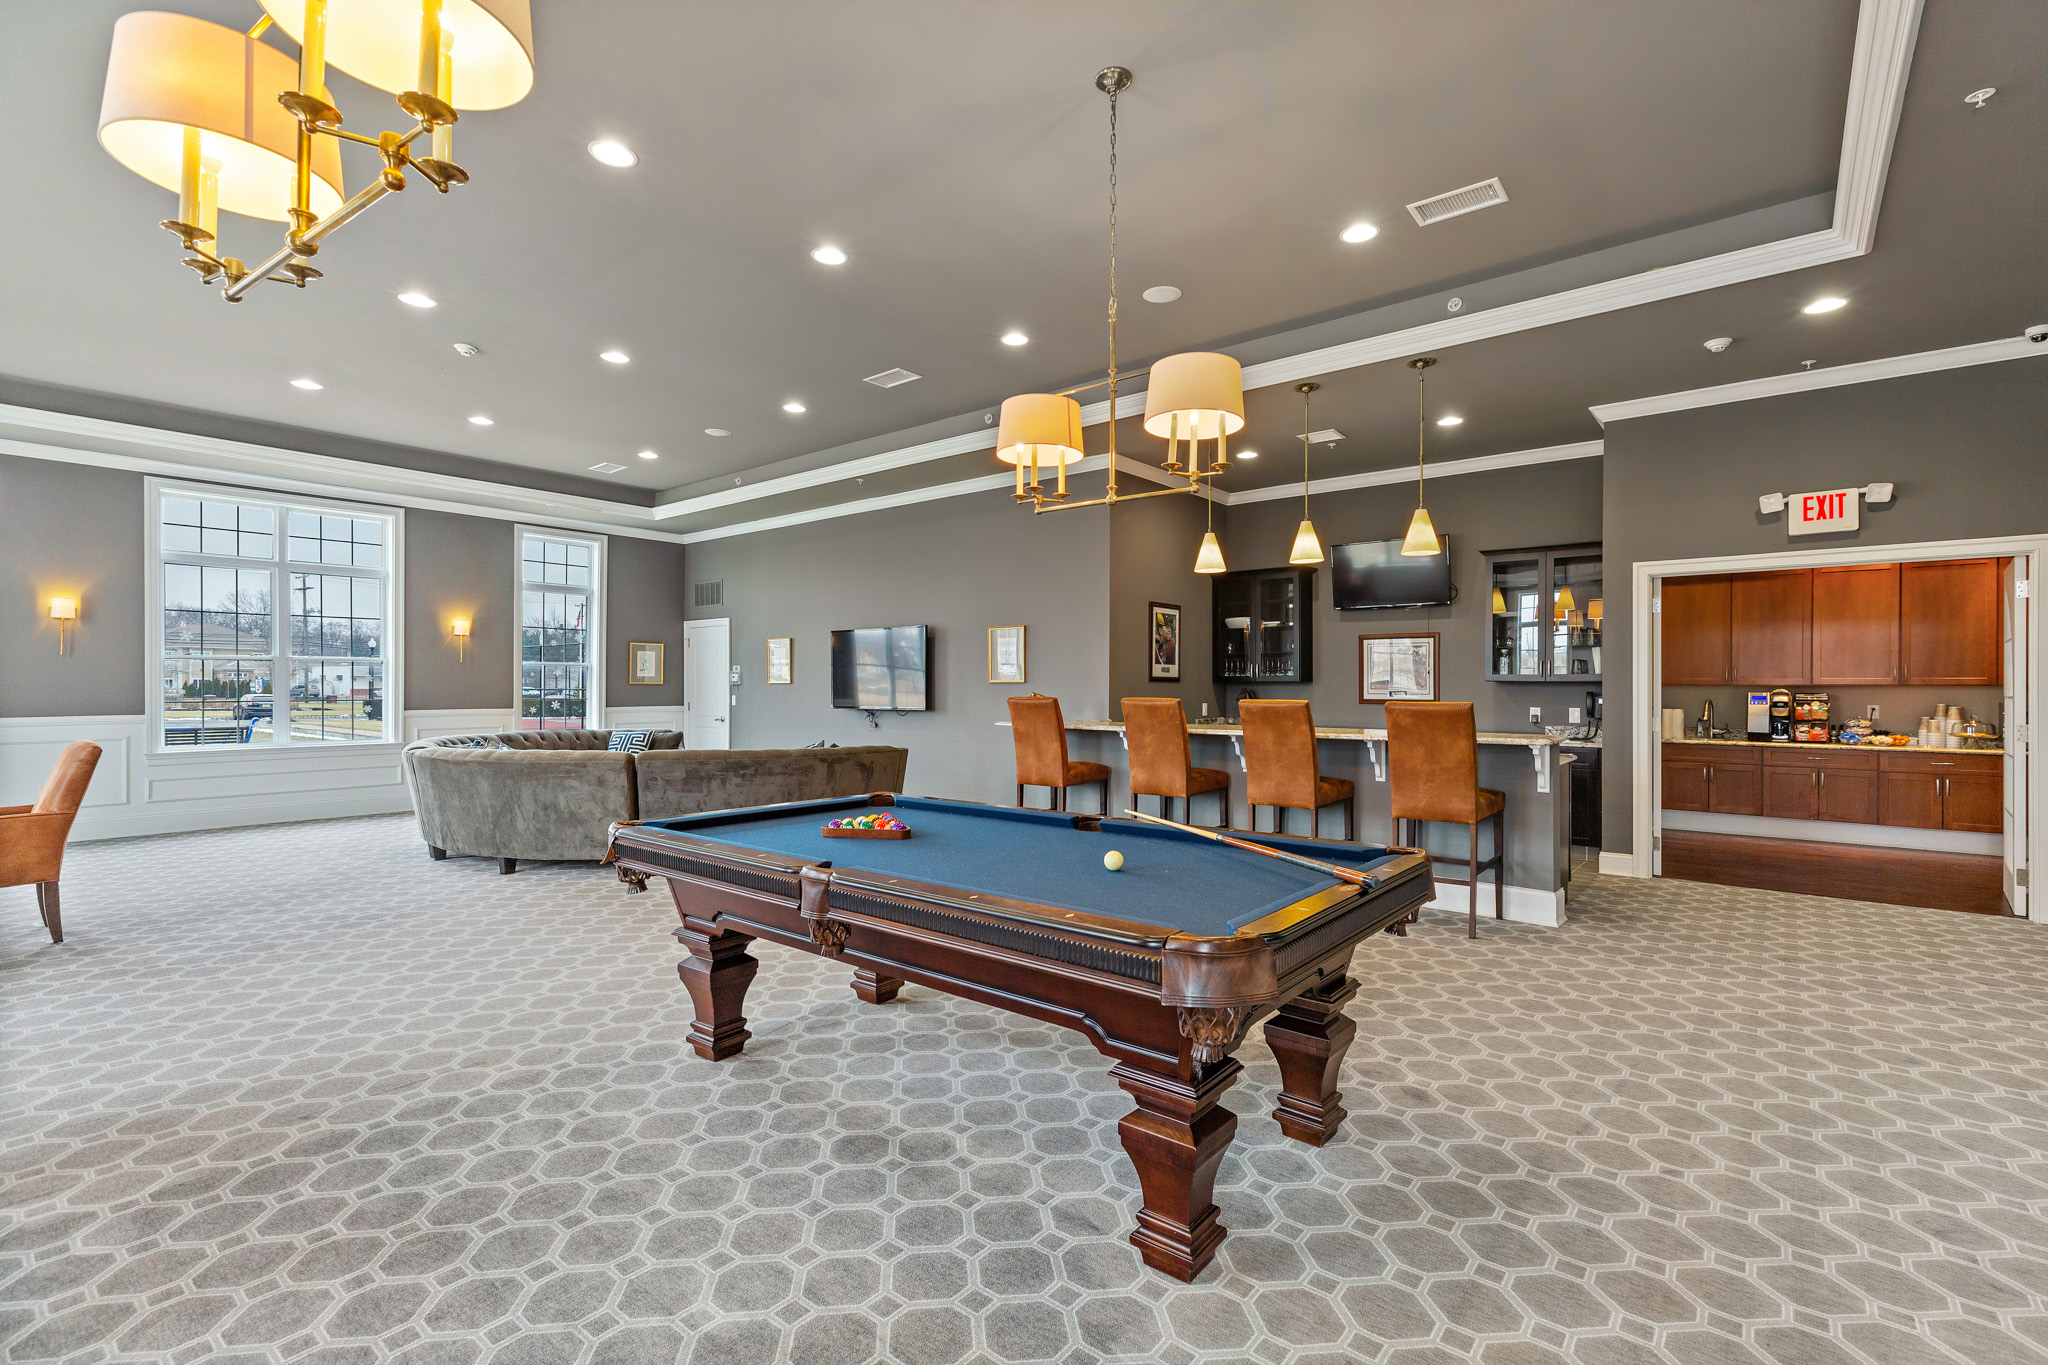 Sports Lounge facing pool table.jpg